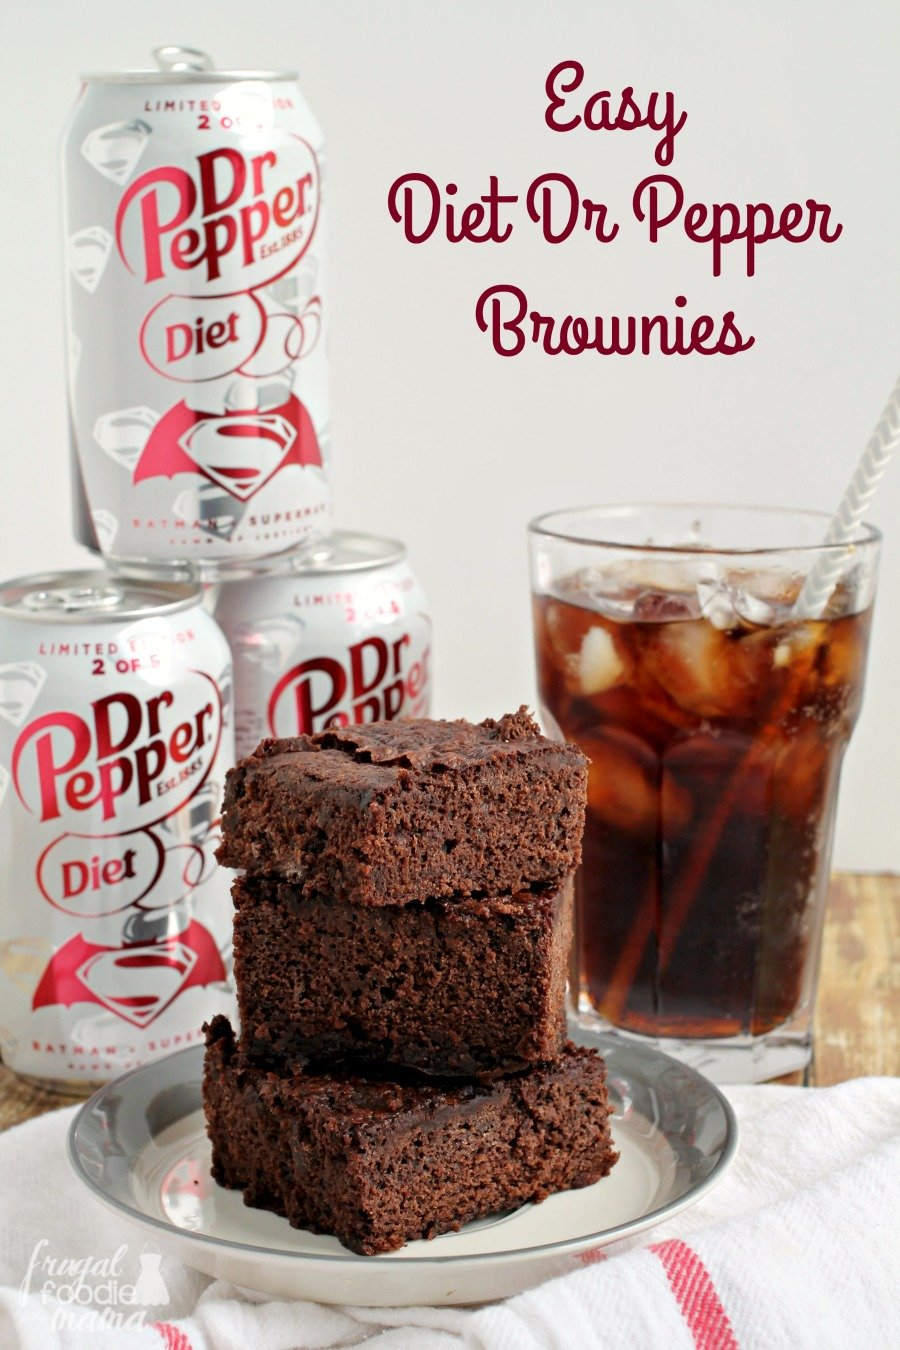 Easy-Diet-Dr-Pepper-Brownies-Titled